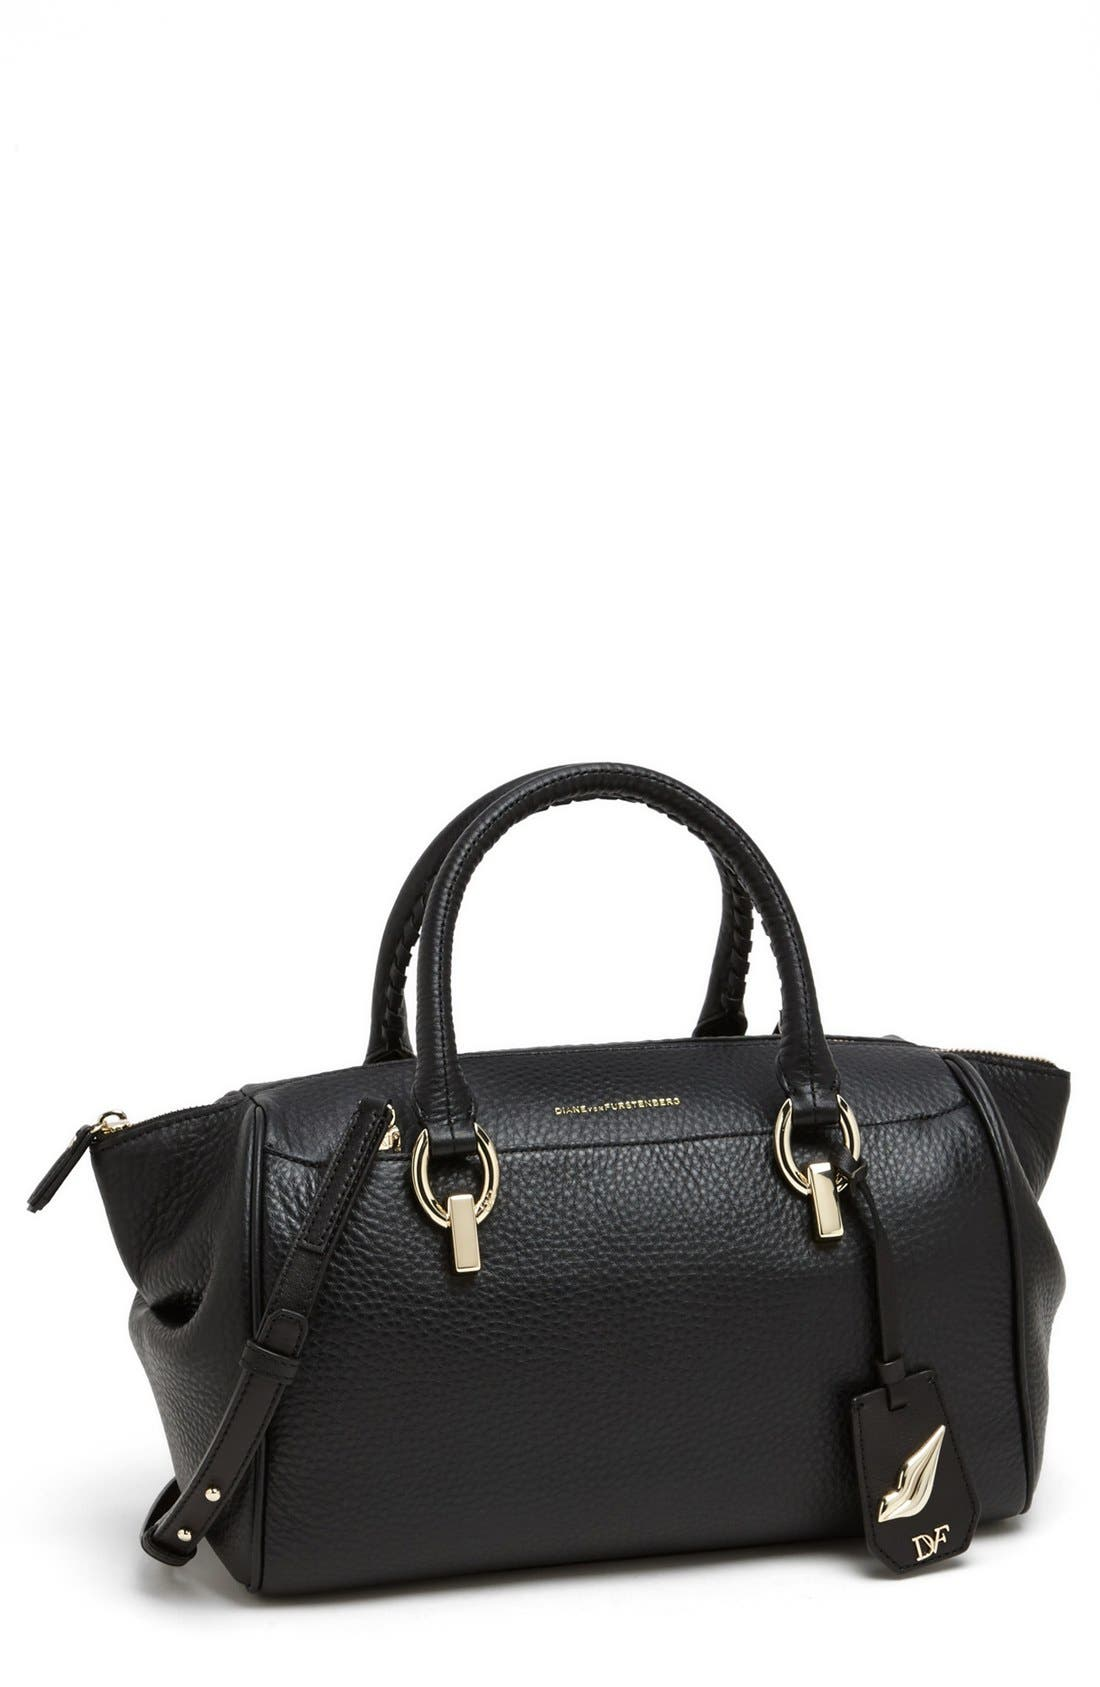 Main Image - Diane von Furstenberg 'Small Sutra' Leather Satchel